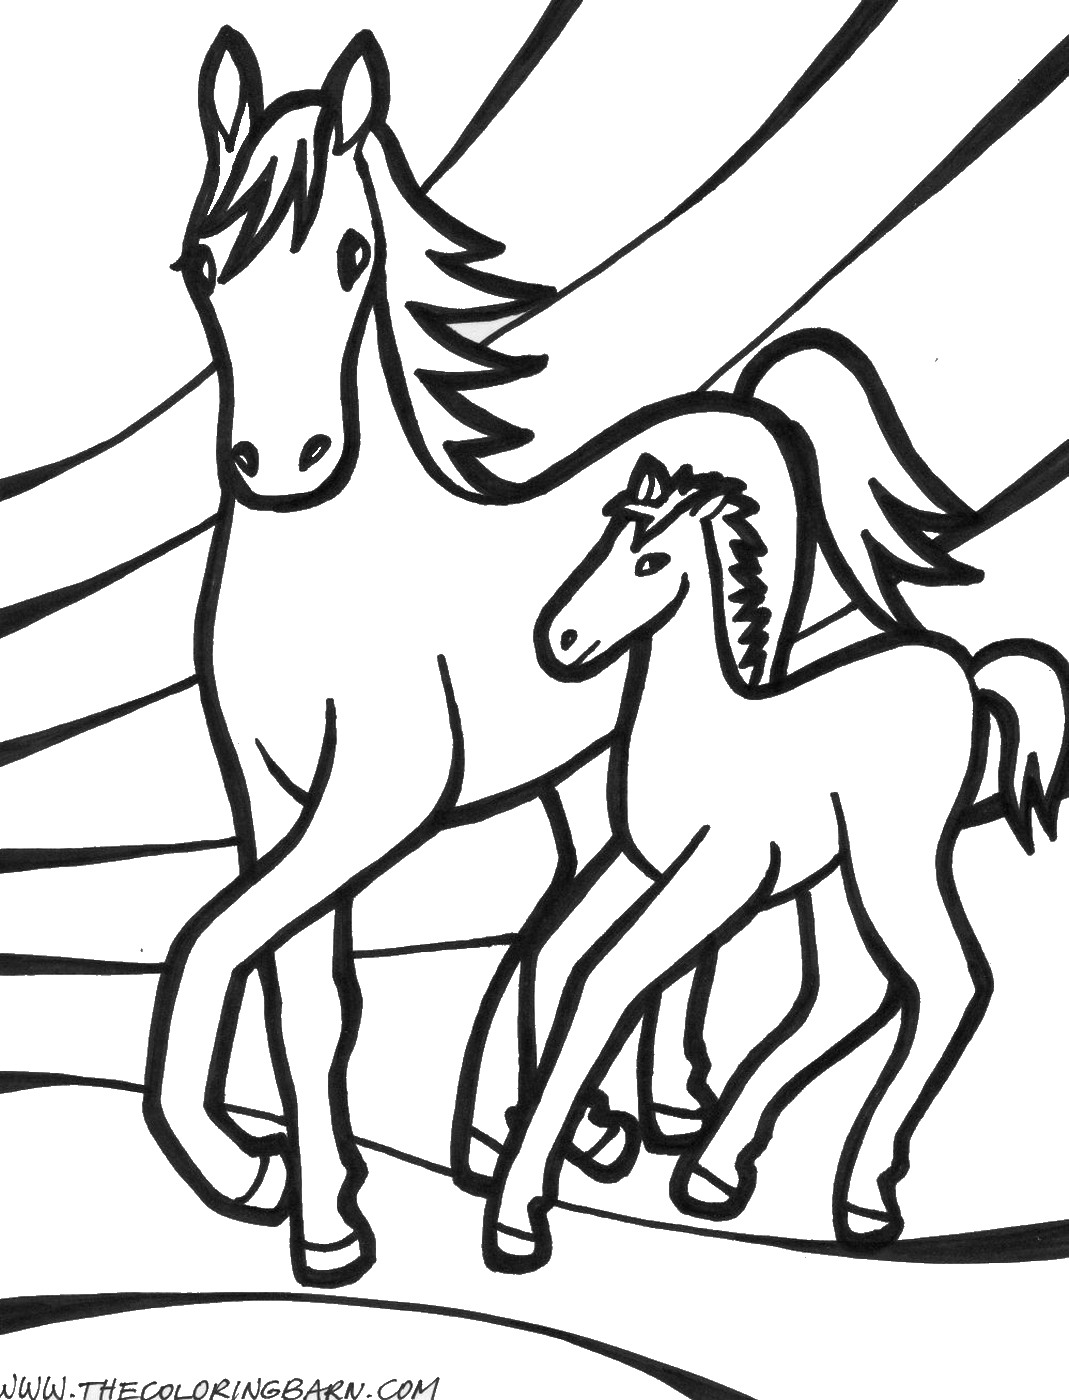 coloring pages of horses to print horse coloring pages birthday printable to print of horses pages coloring